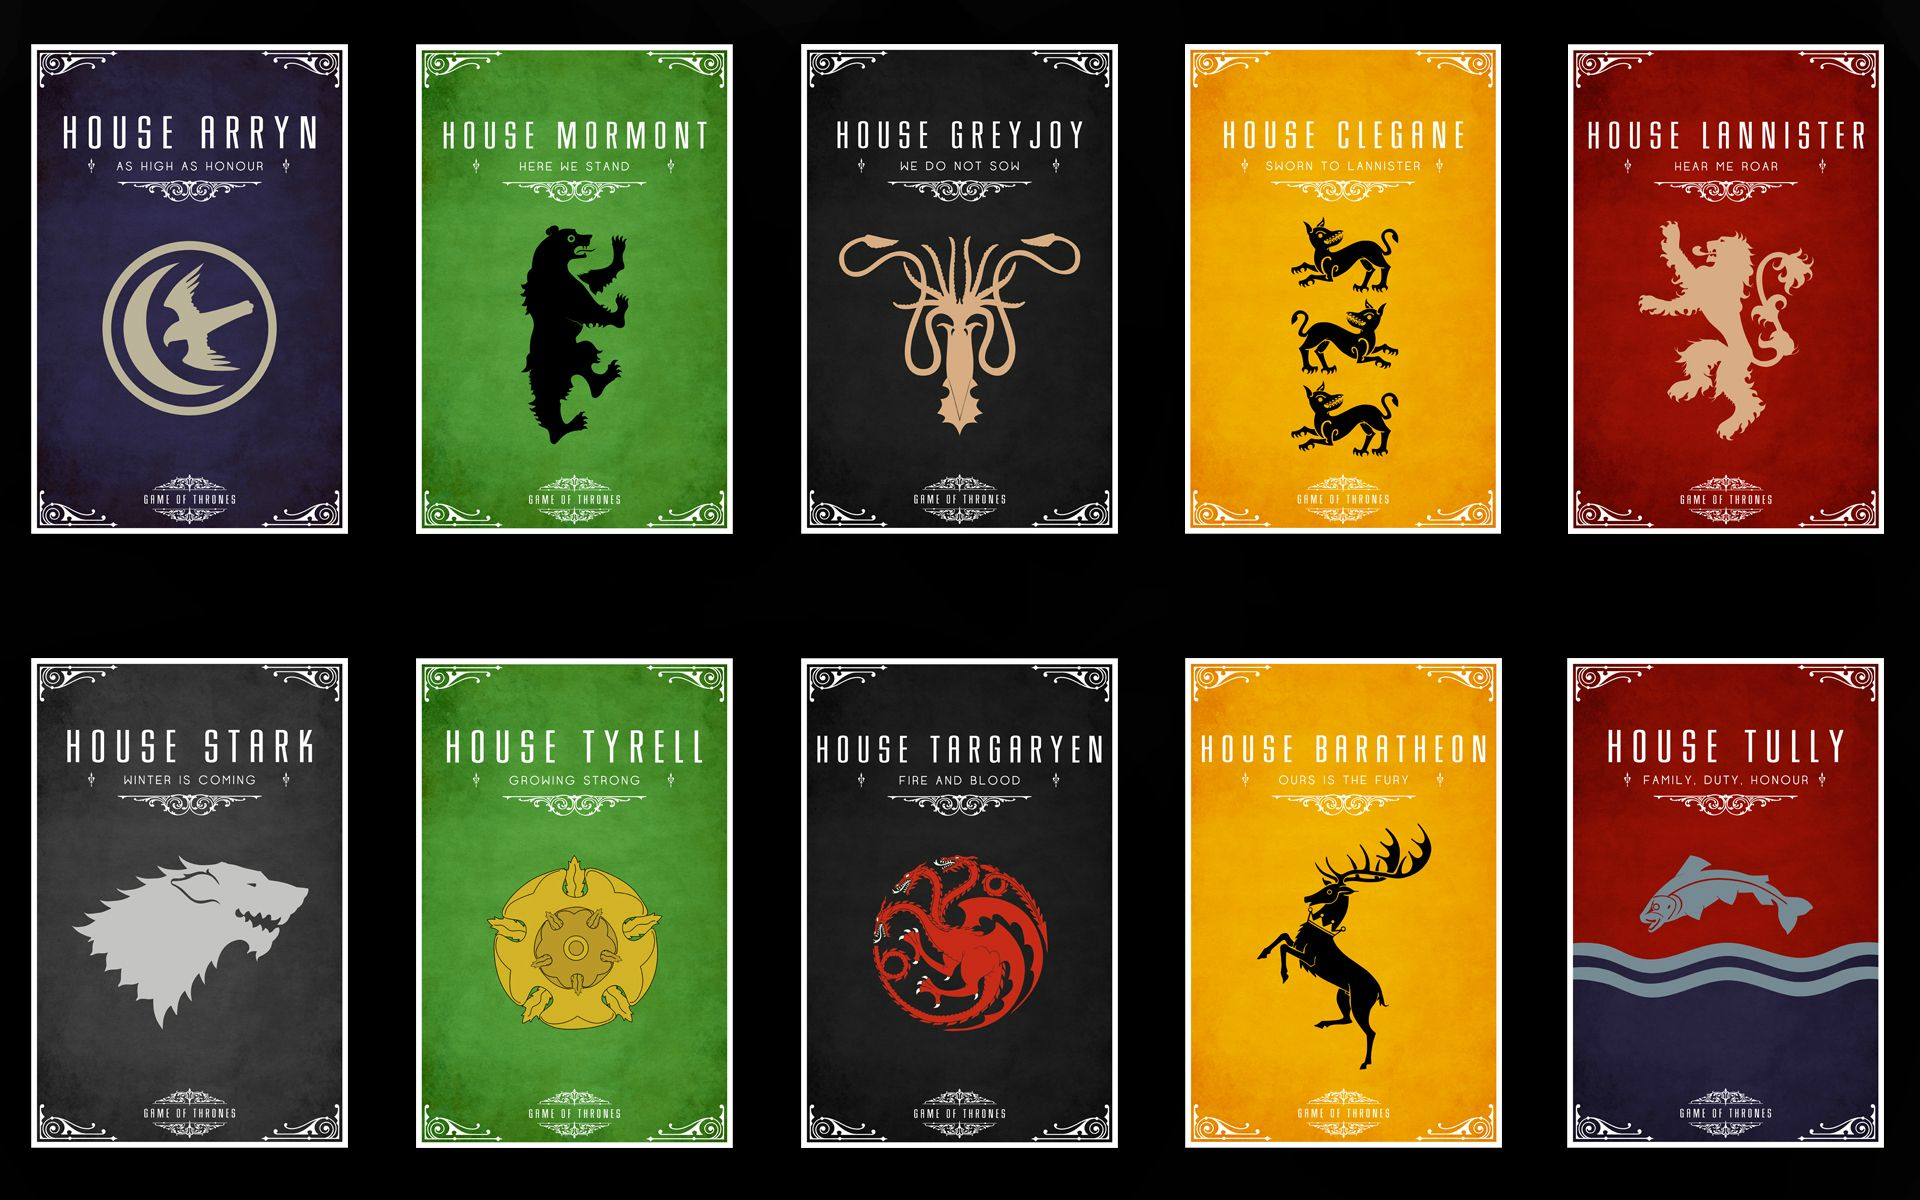 Game of Thrones Houses Mottos